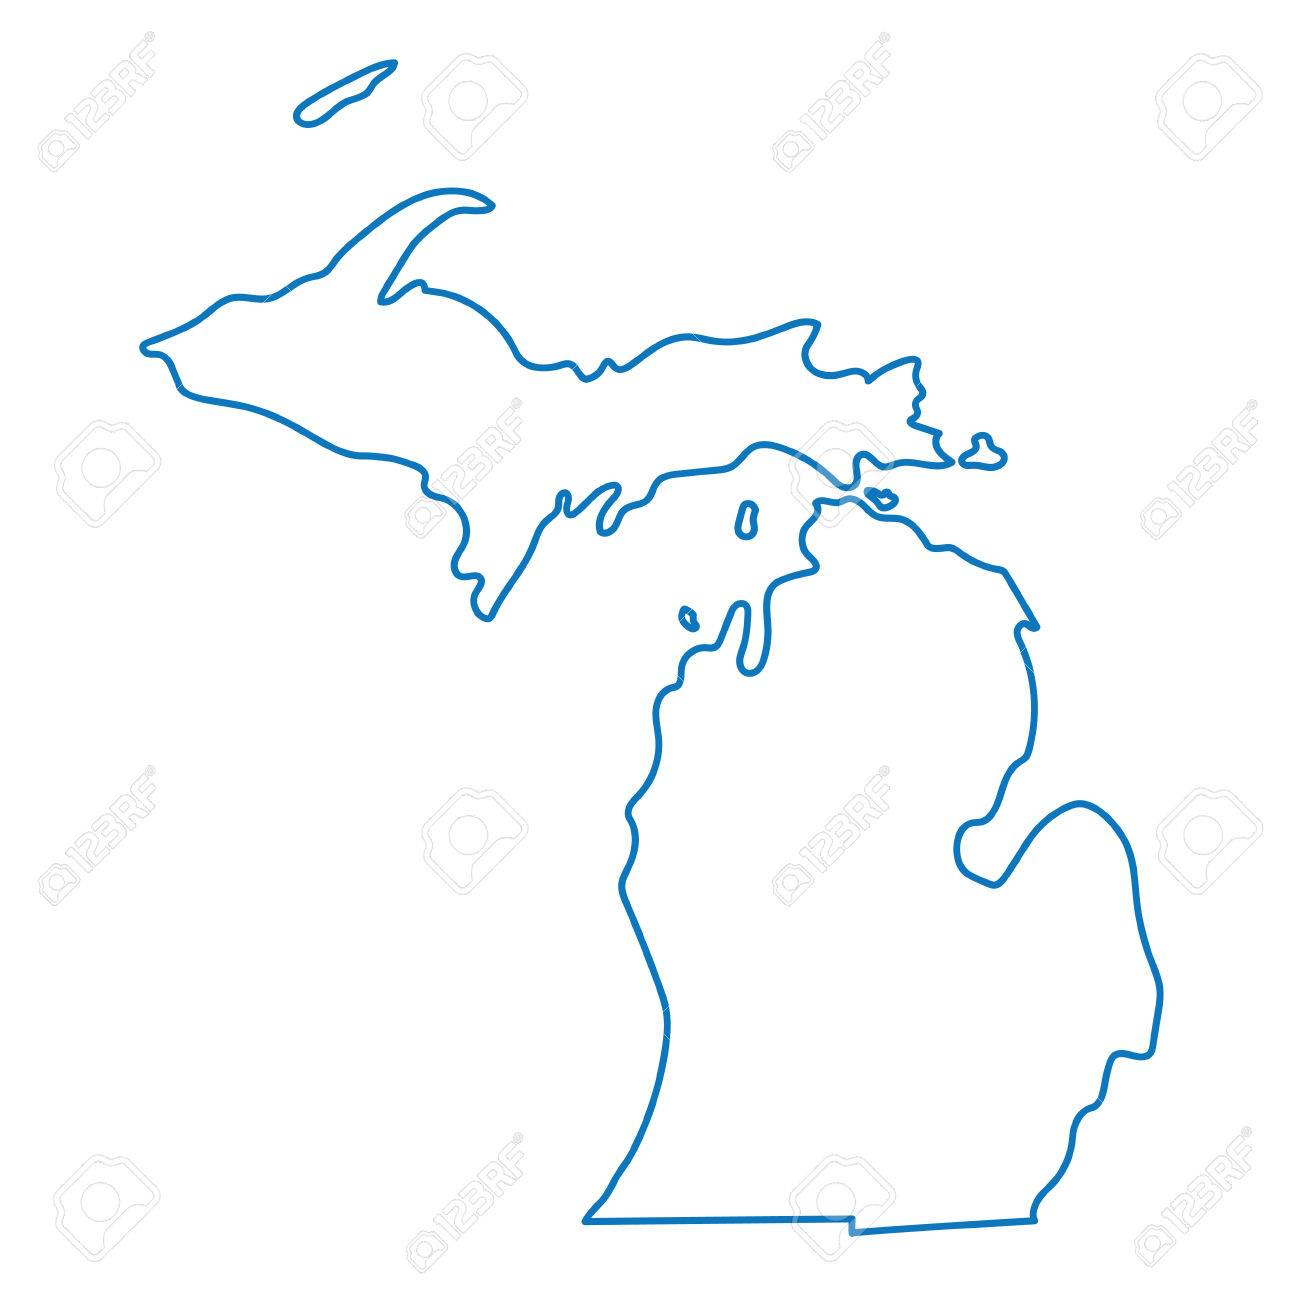 blue abstract outline map of Michigan - 61274317